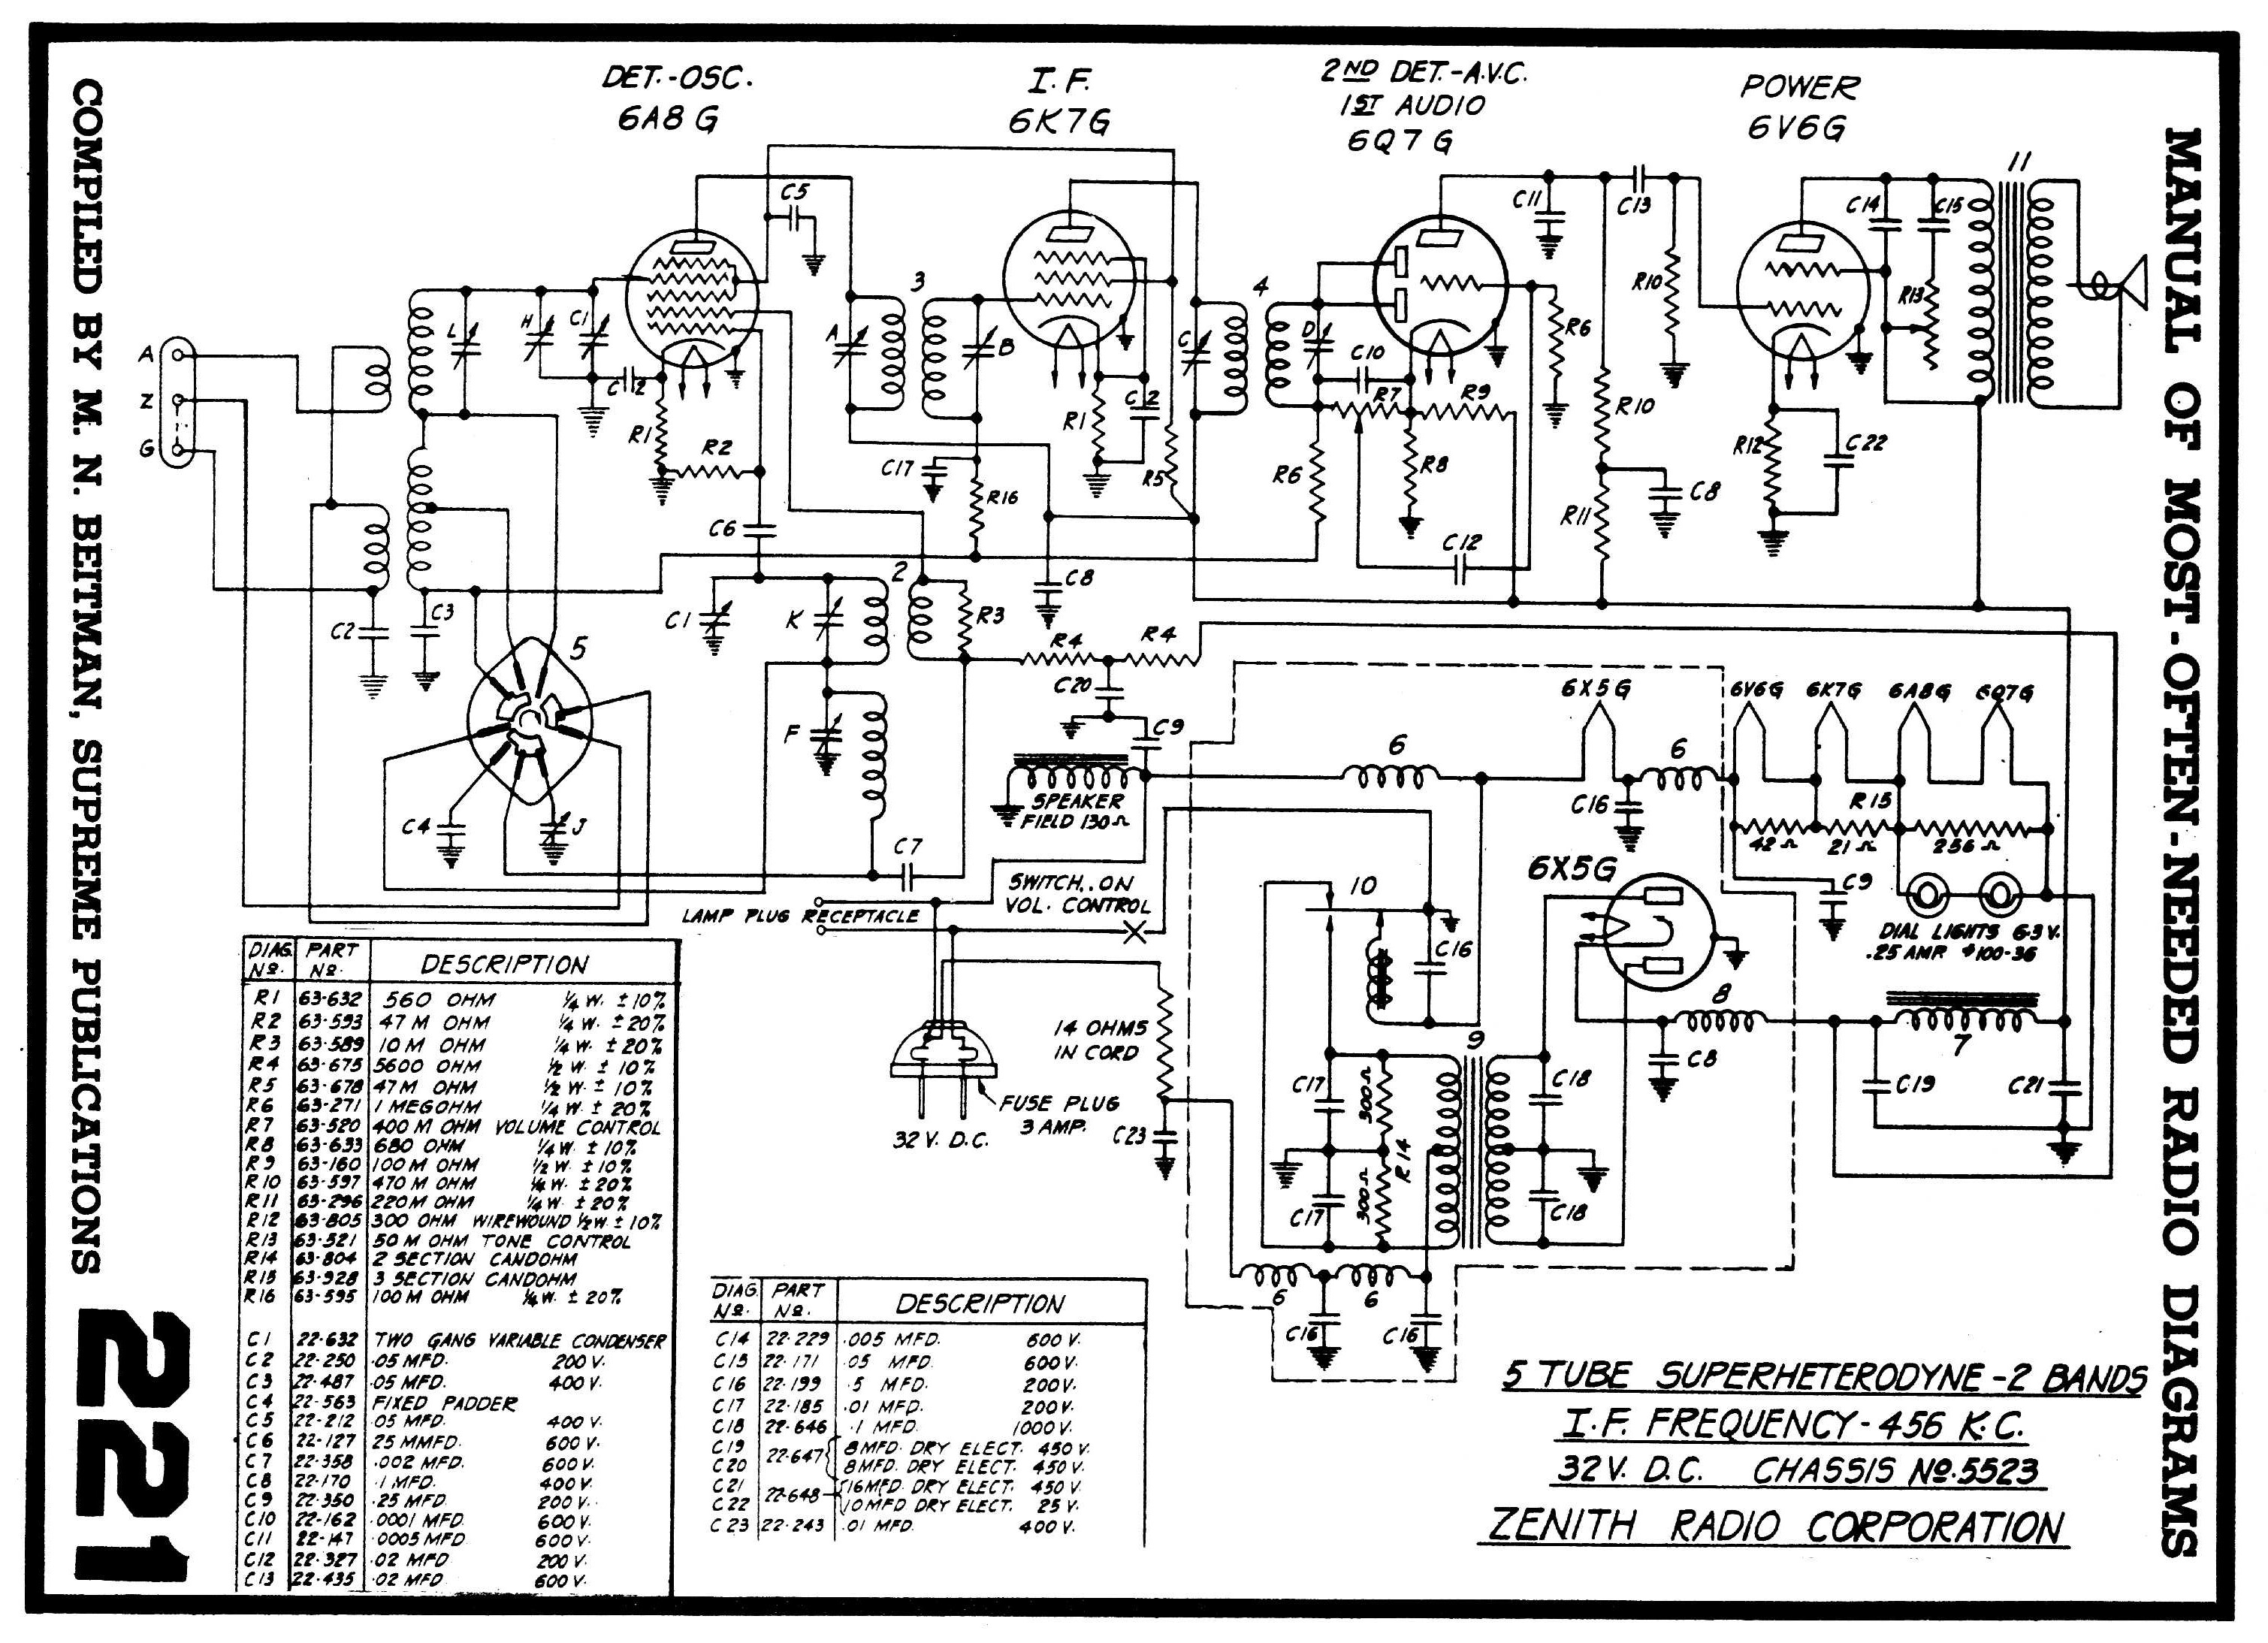 Diagrams And Service Data For Zenith 5 X 274